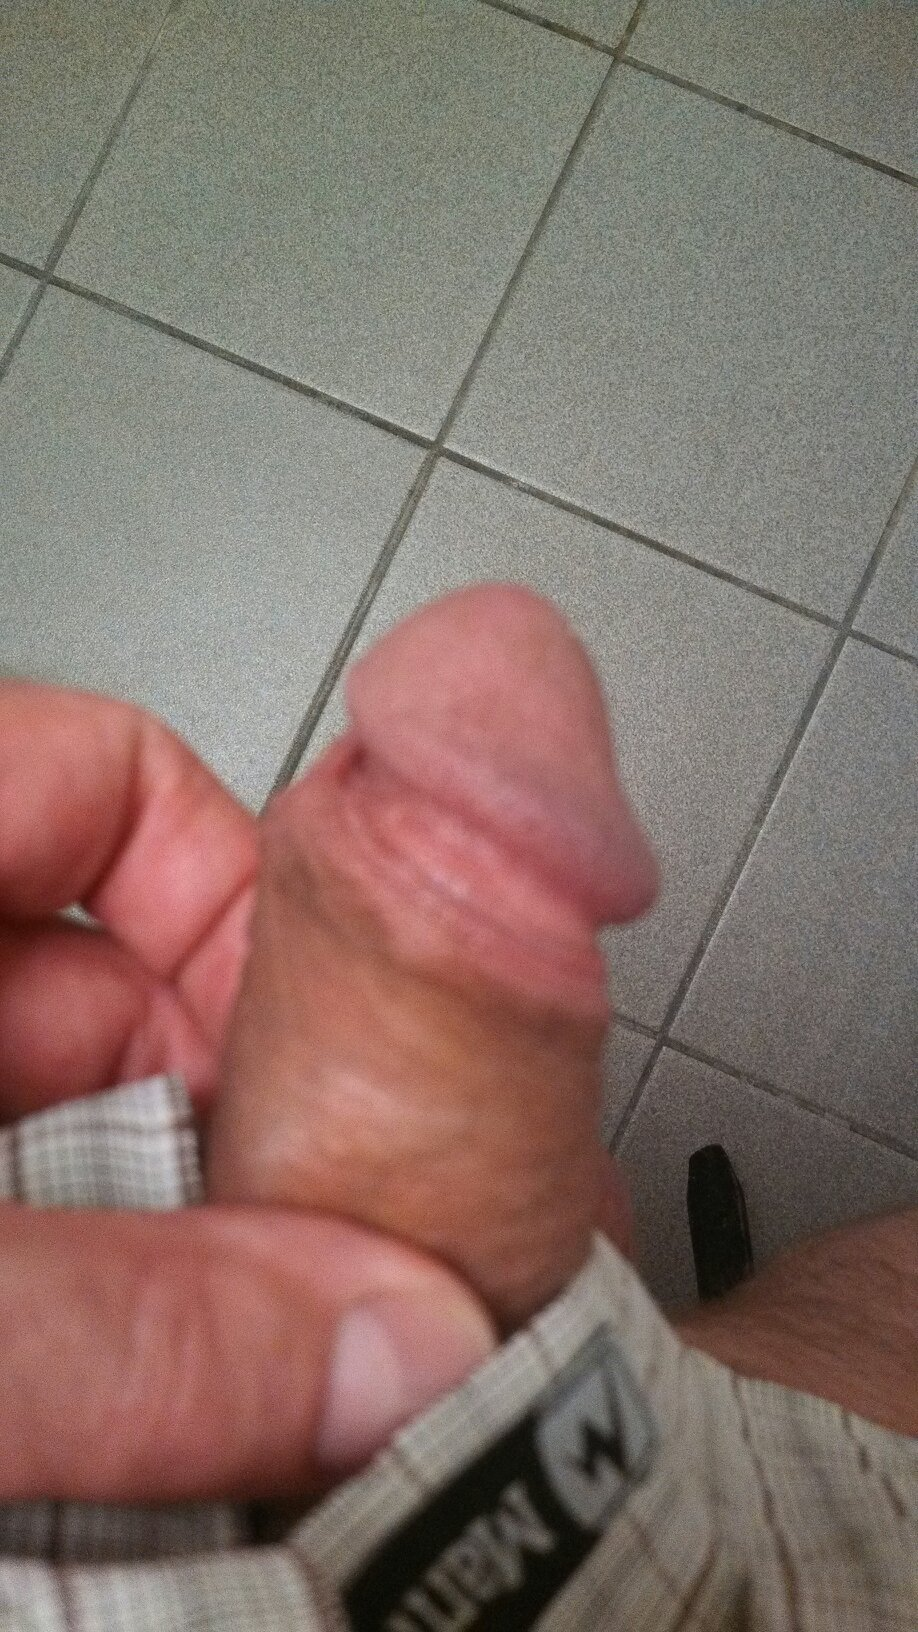 penis swelling after sex